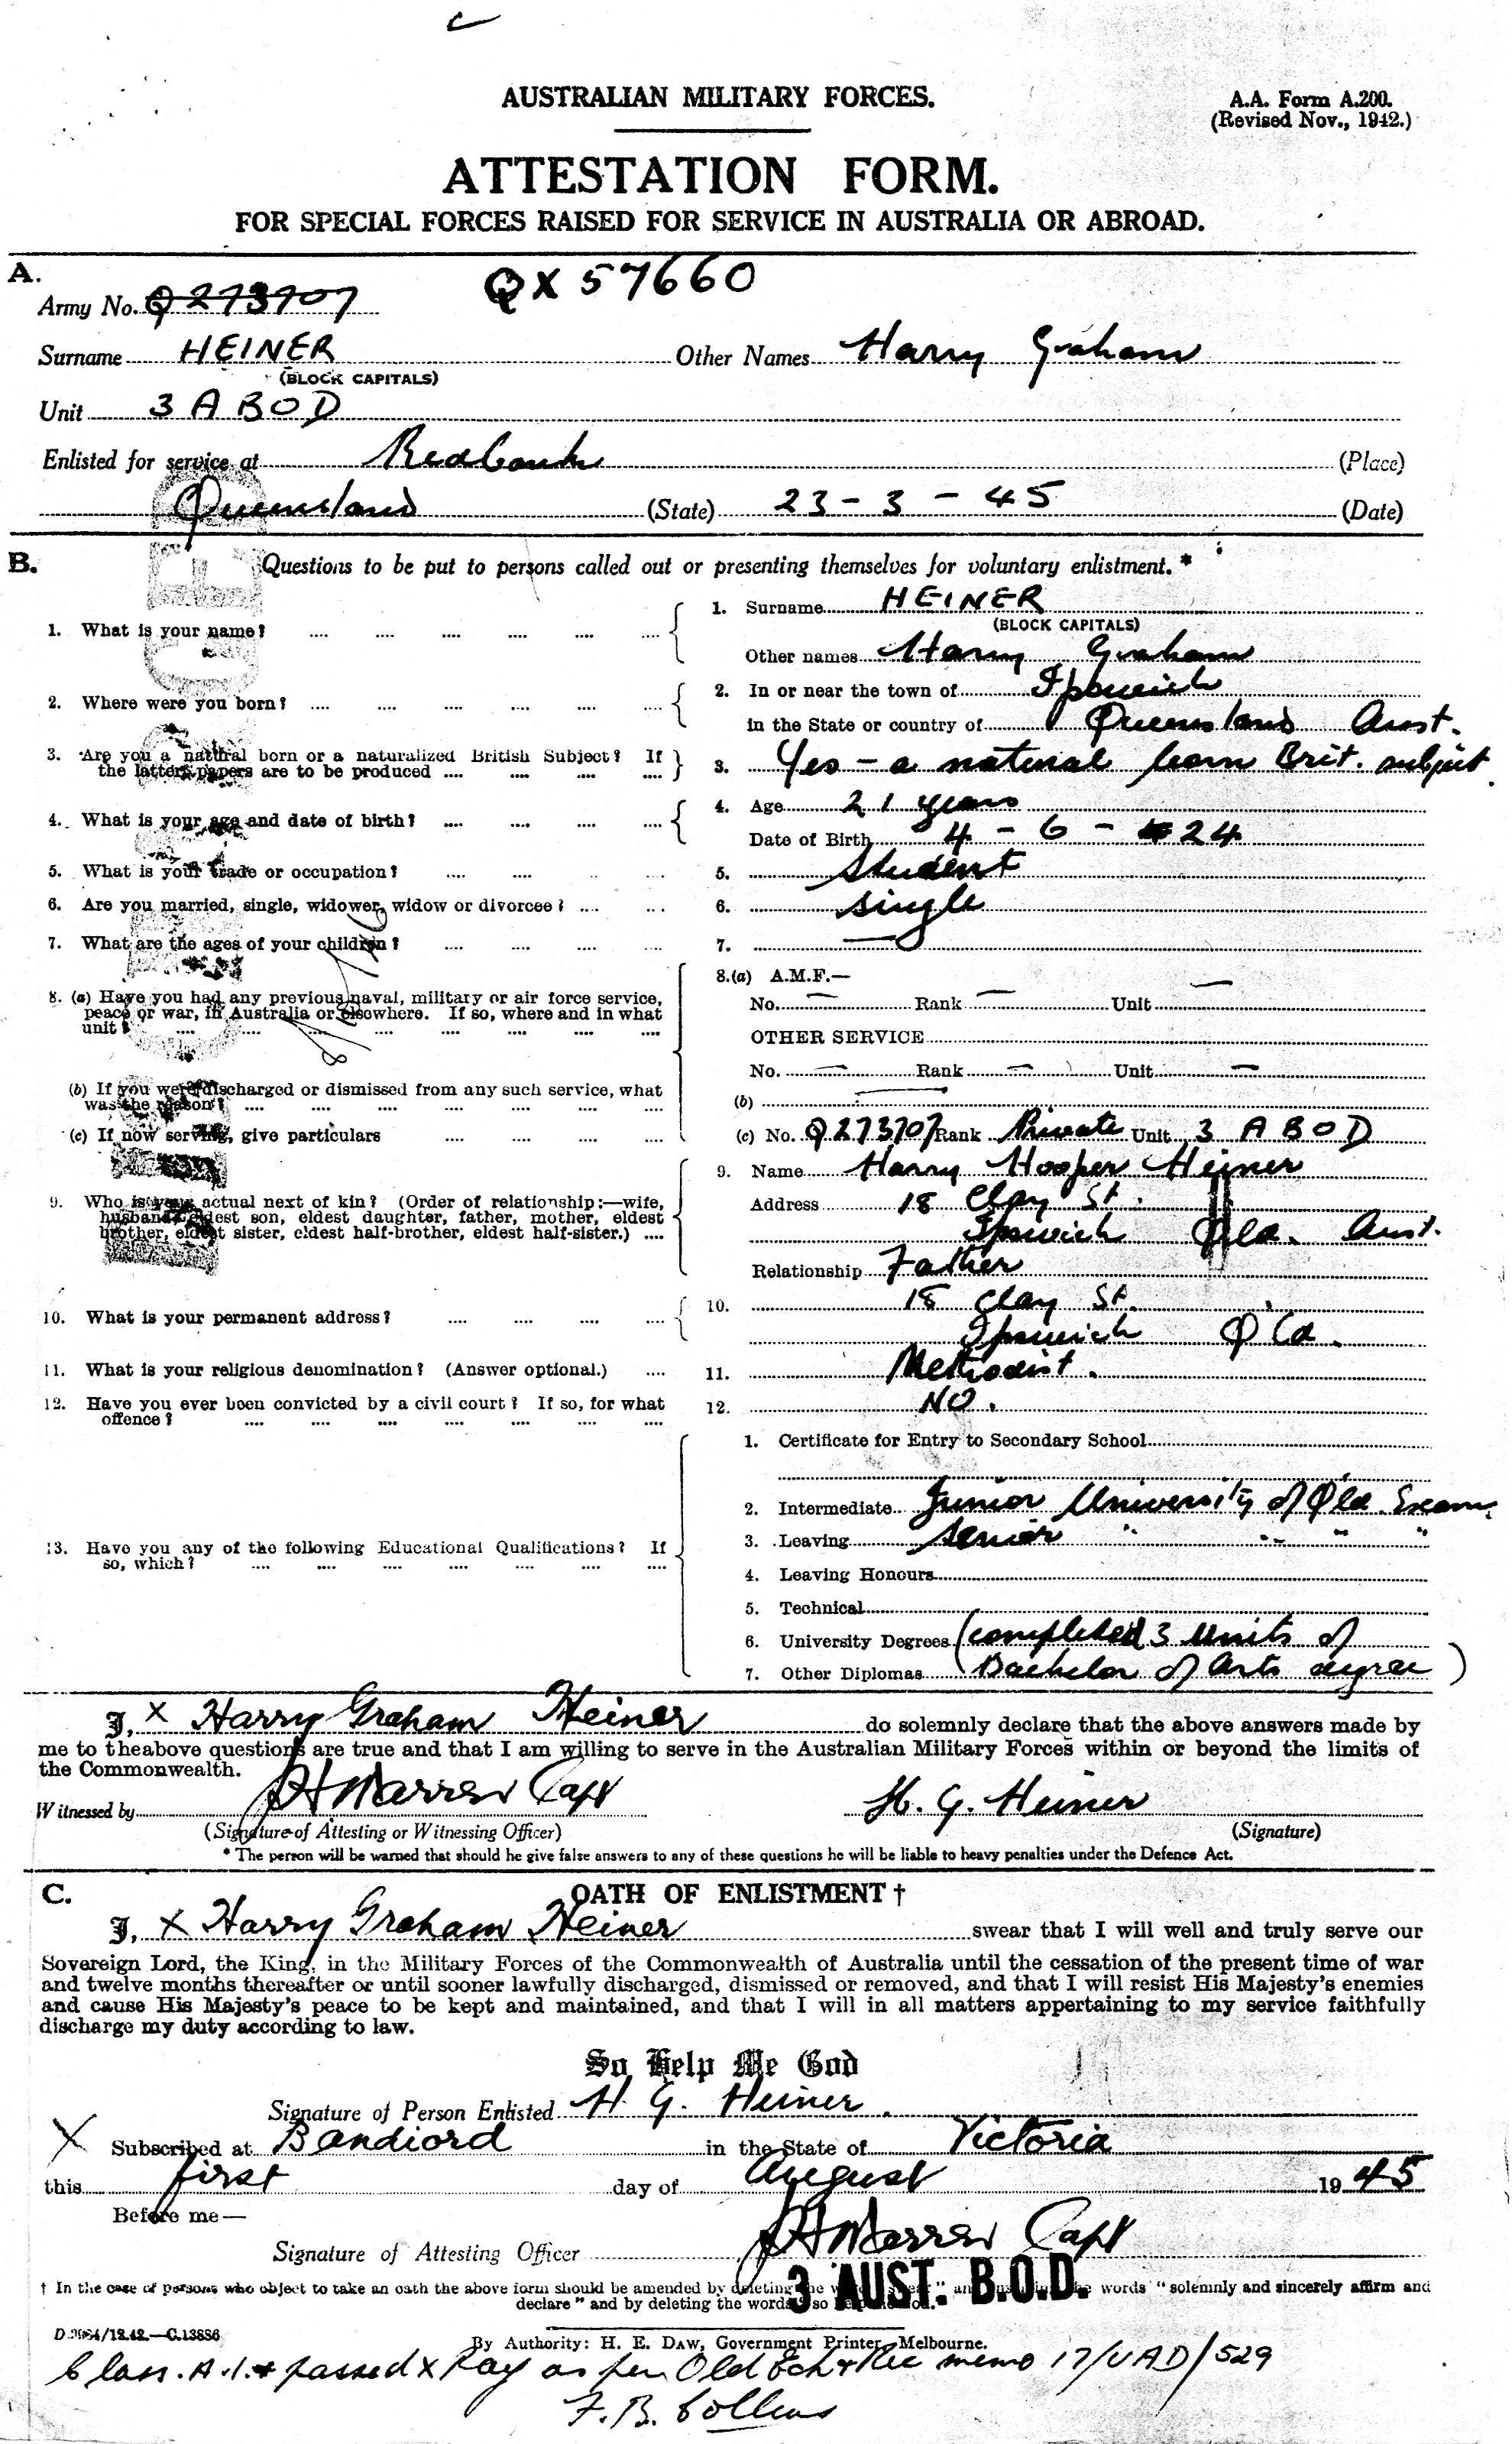 Ww Military Attestation Form For Harry Graham Heiner  History